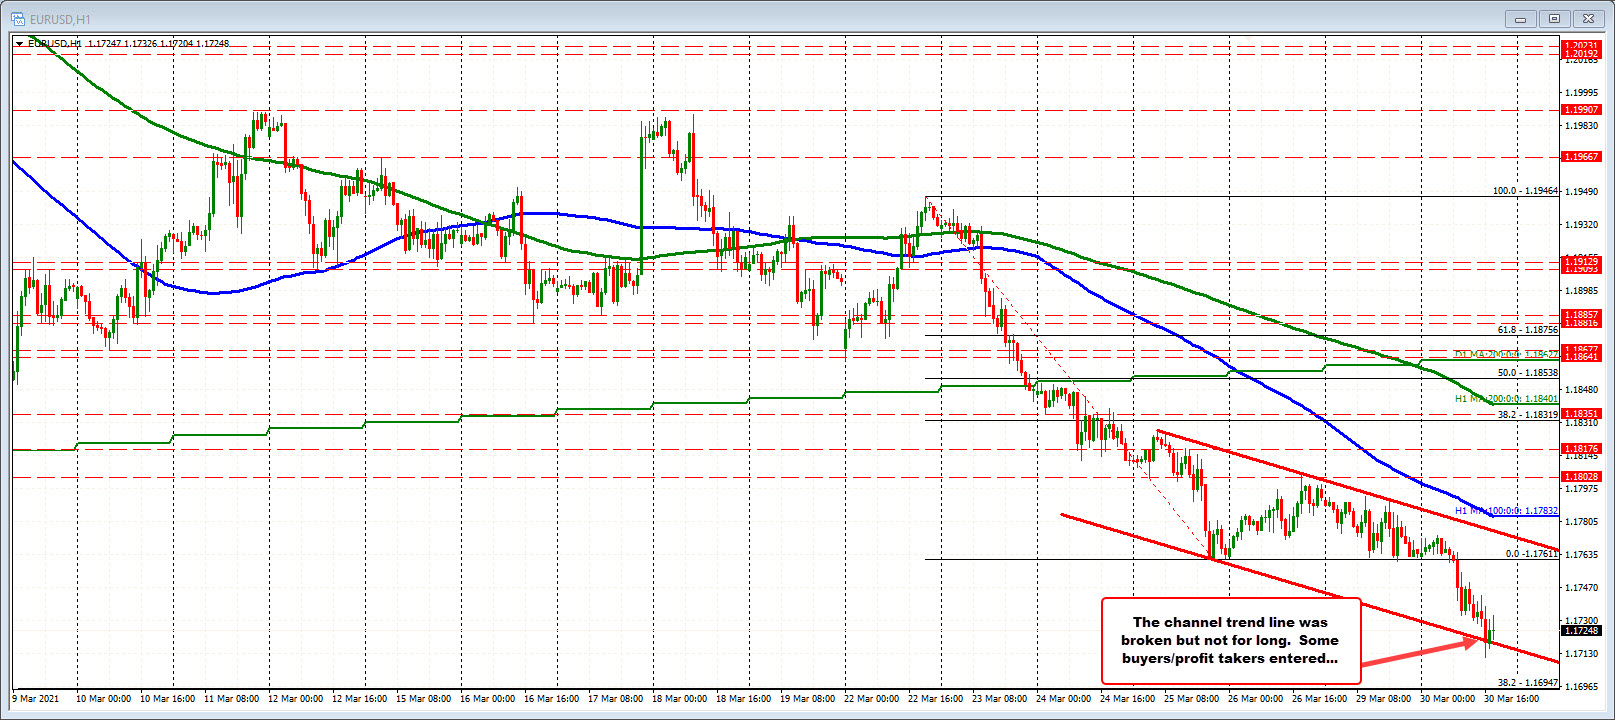 The price remains below 5-minute MA level/trend line/retracement on the intraday chart.